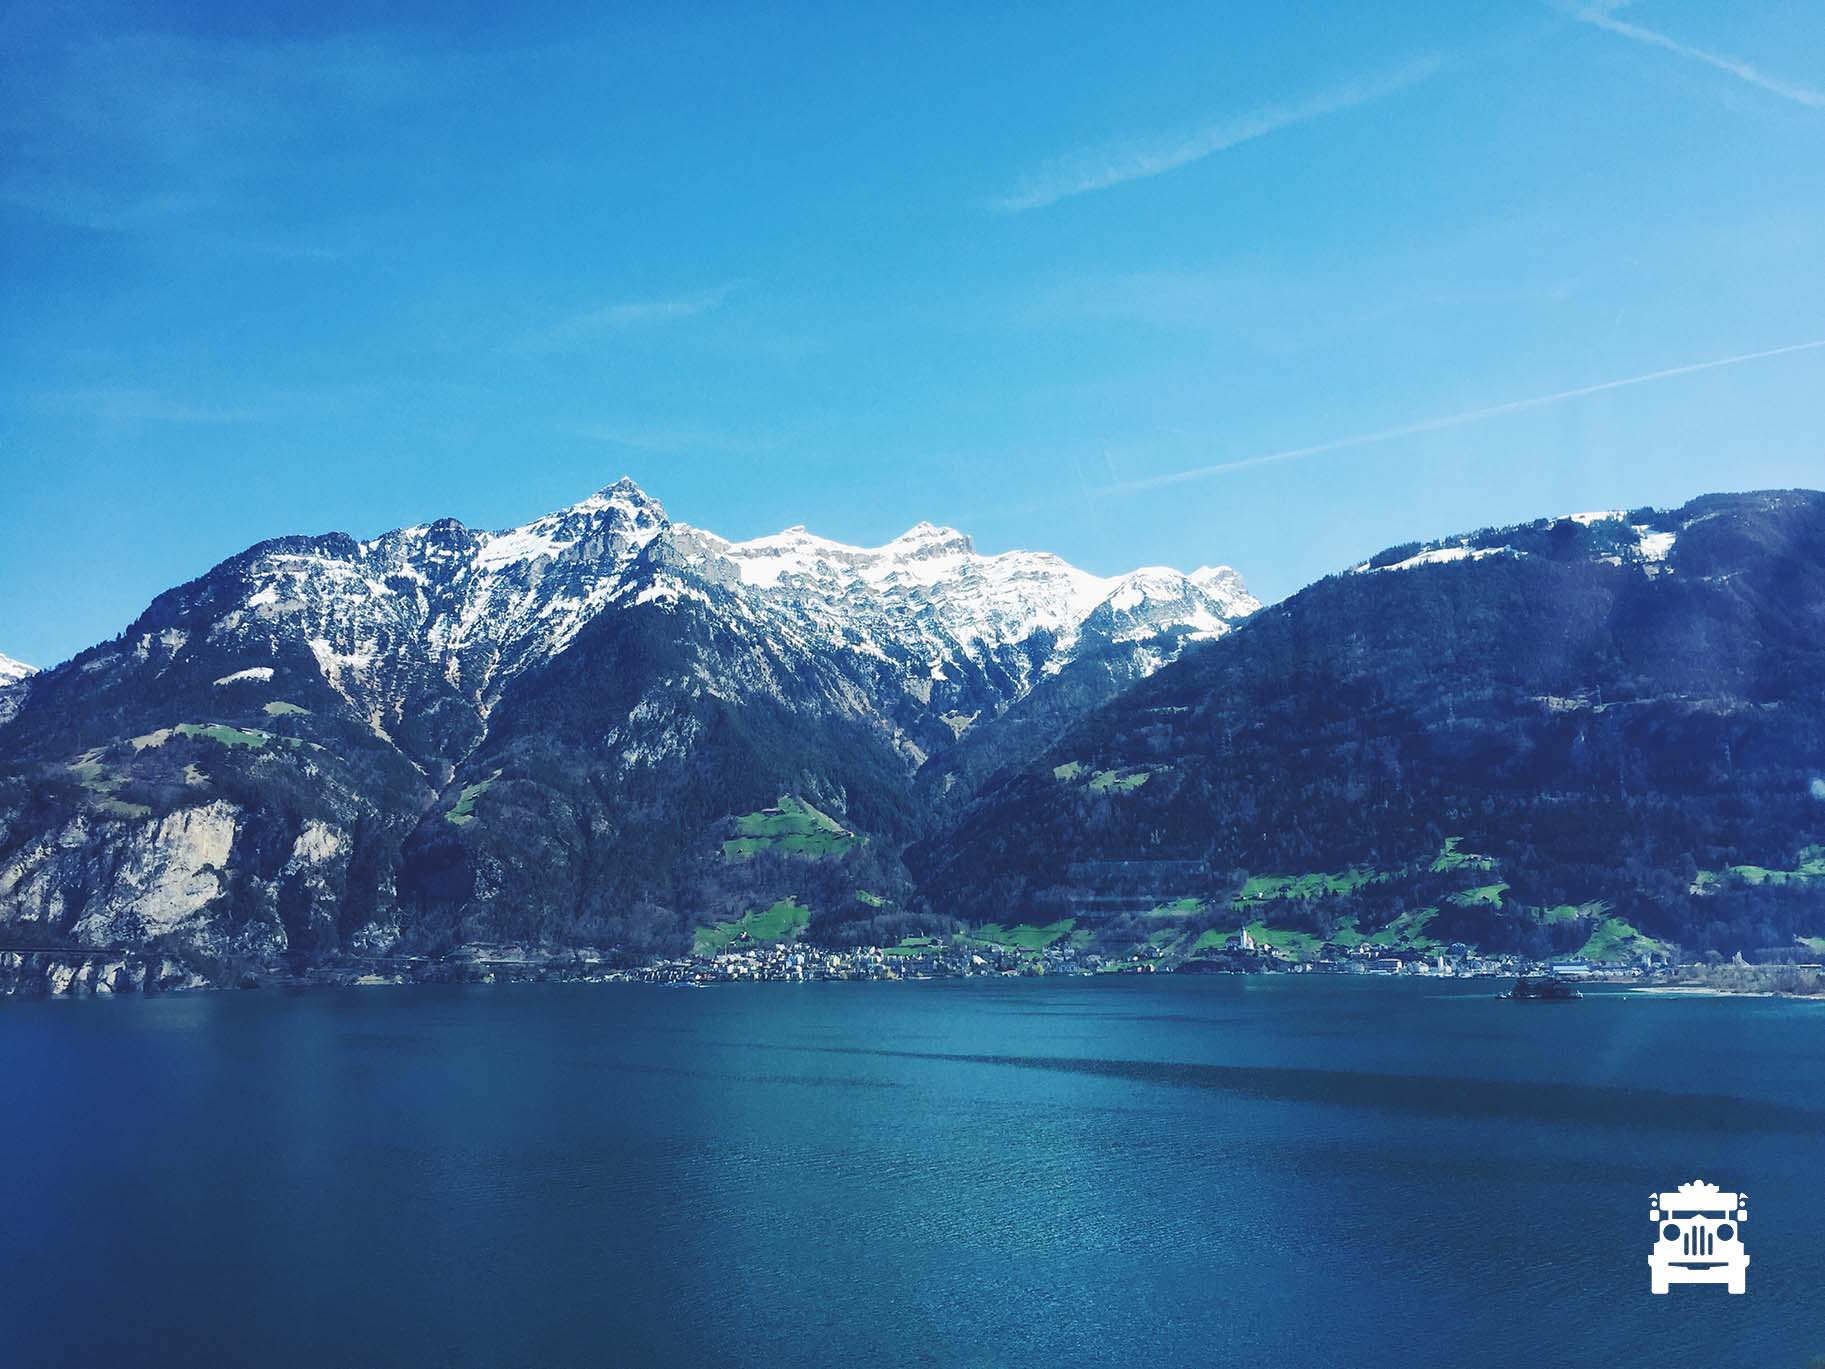 First view of Lake Lucerne!